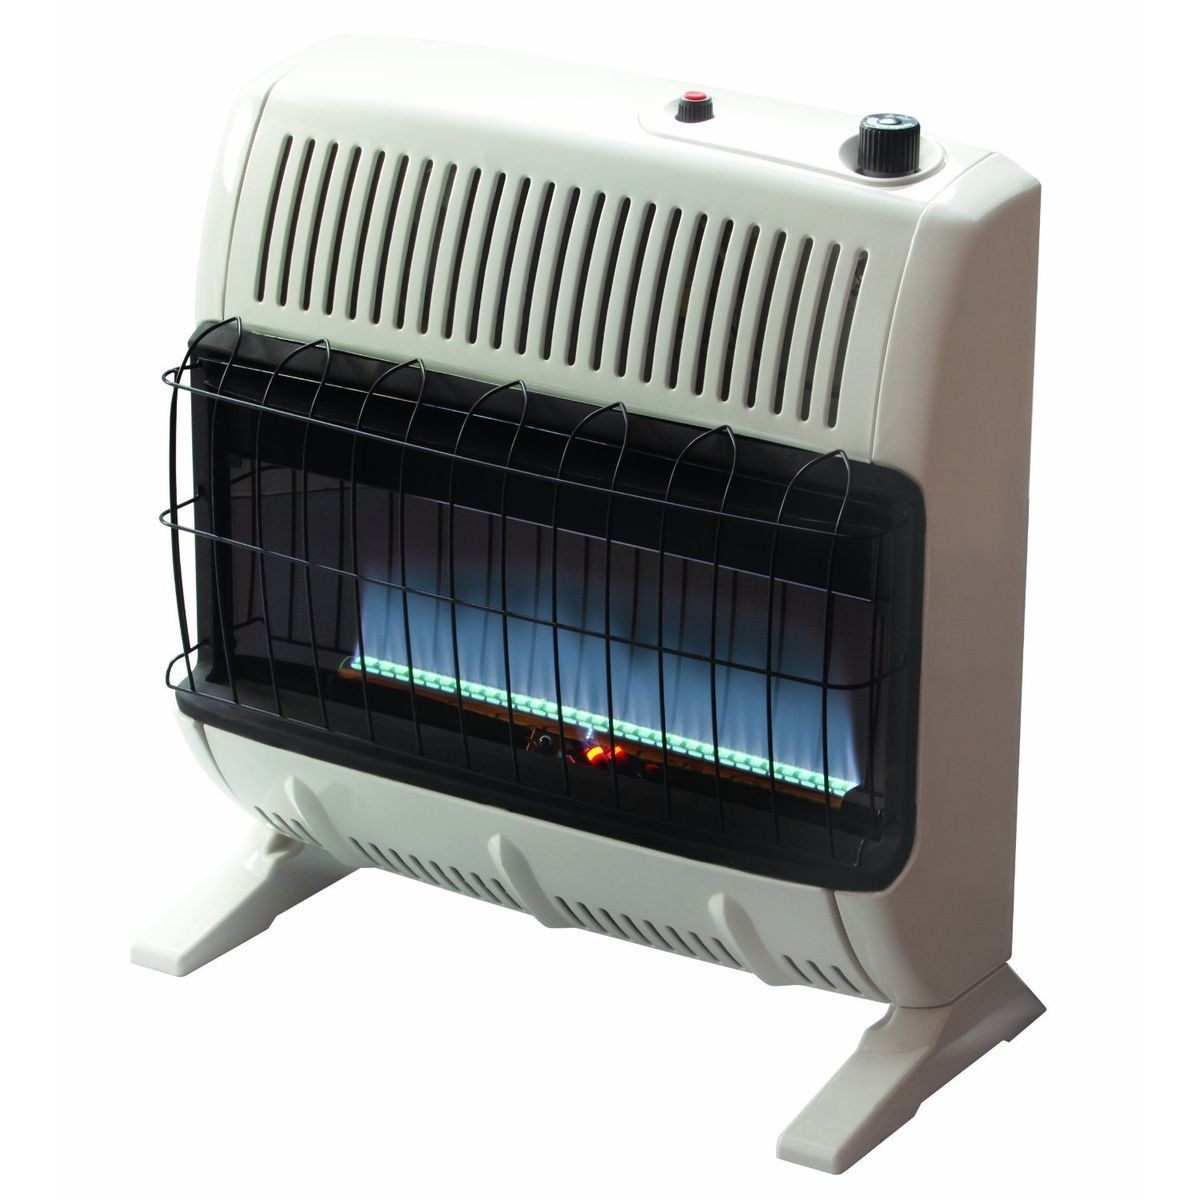 Mr Heater Propane Blue Flame Vent Free Heater Wall Mount Free Standing